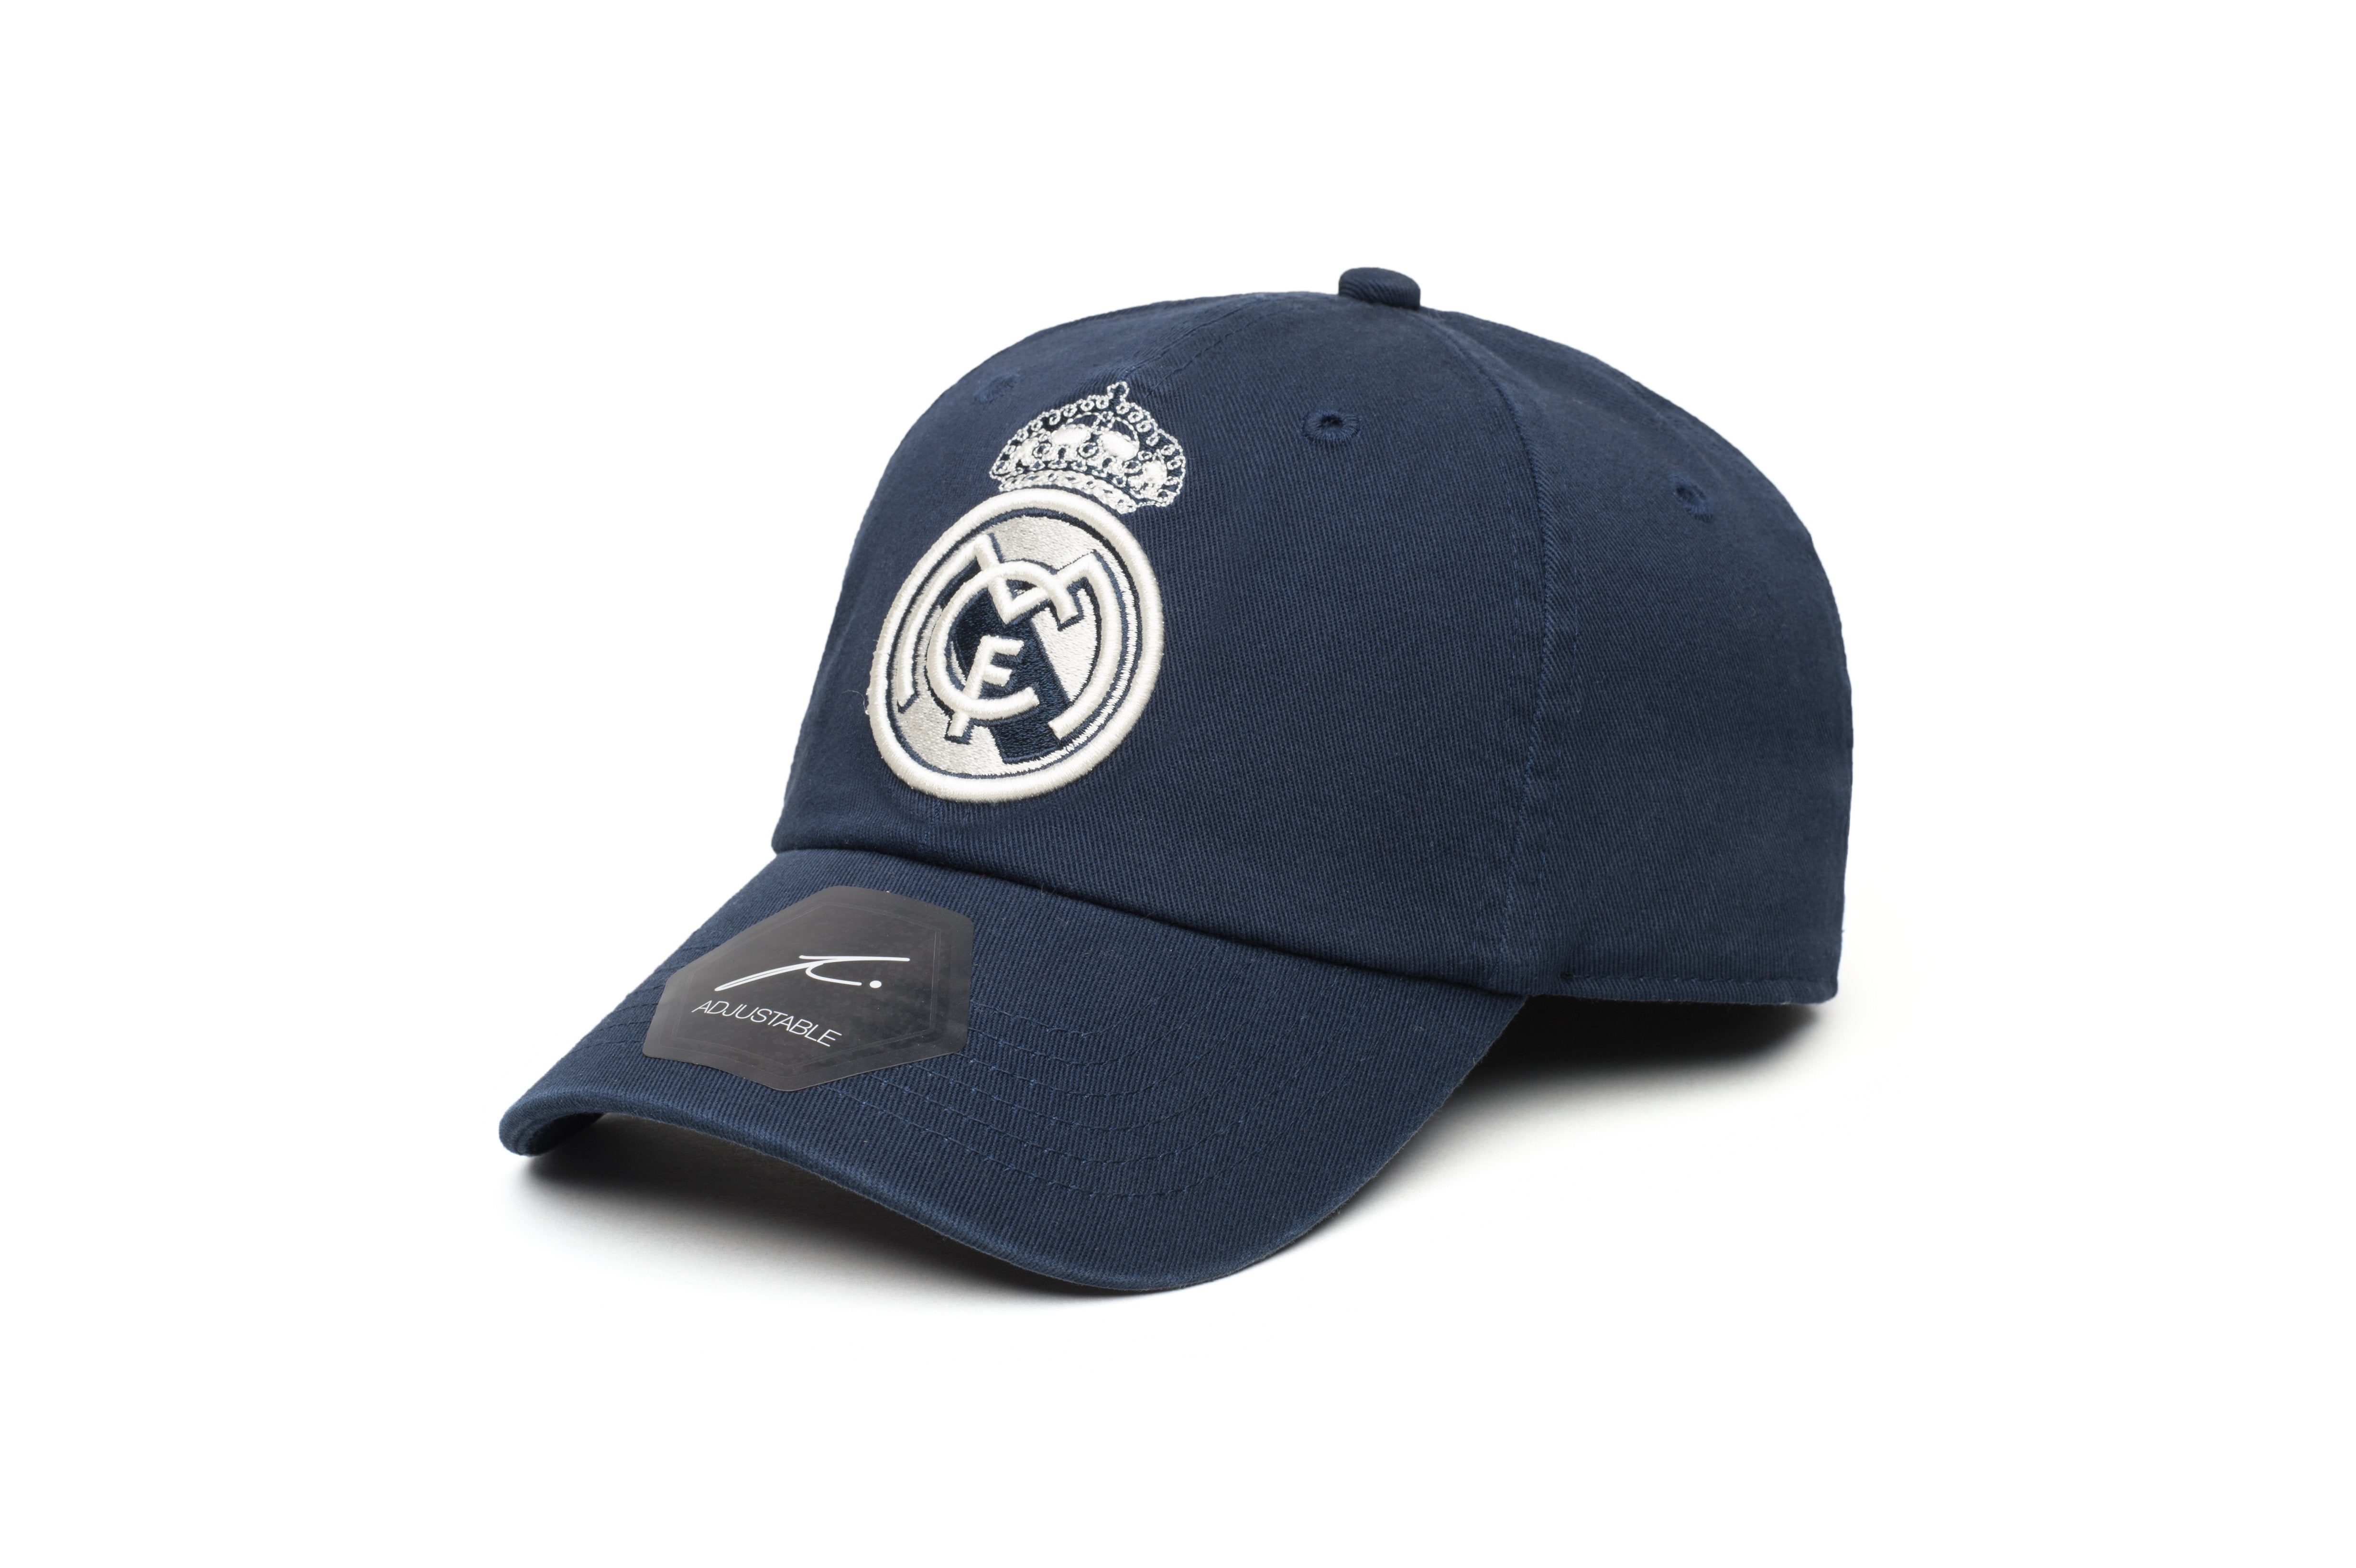 a87f5235cc2 Gorra clásica del Real Madrid – Fi Collection